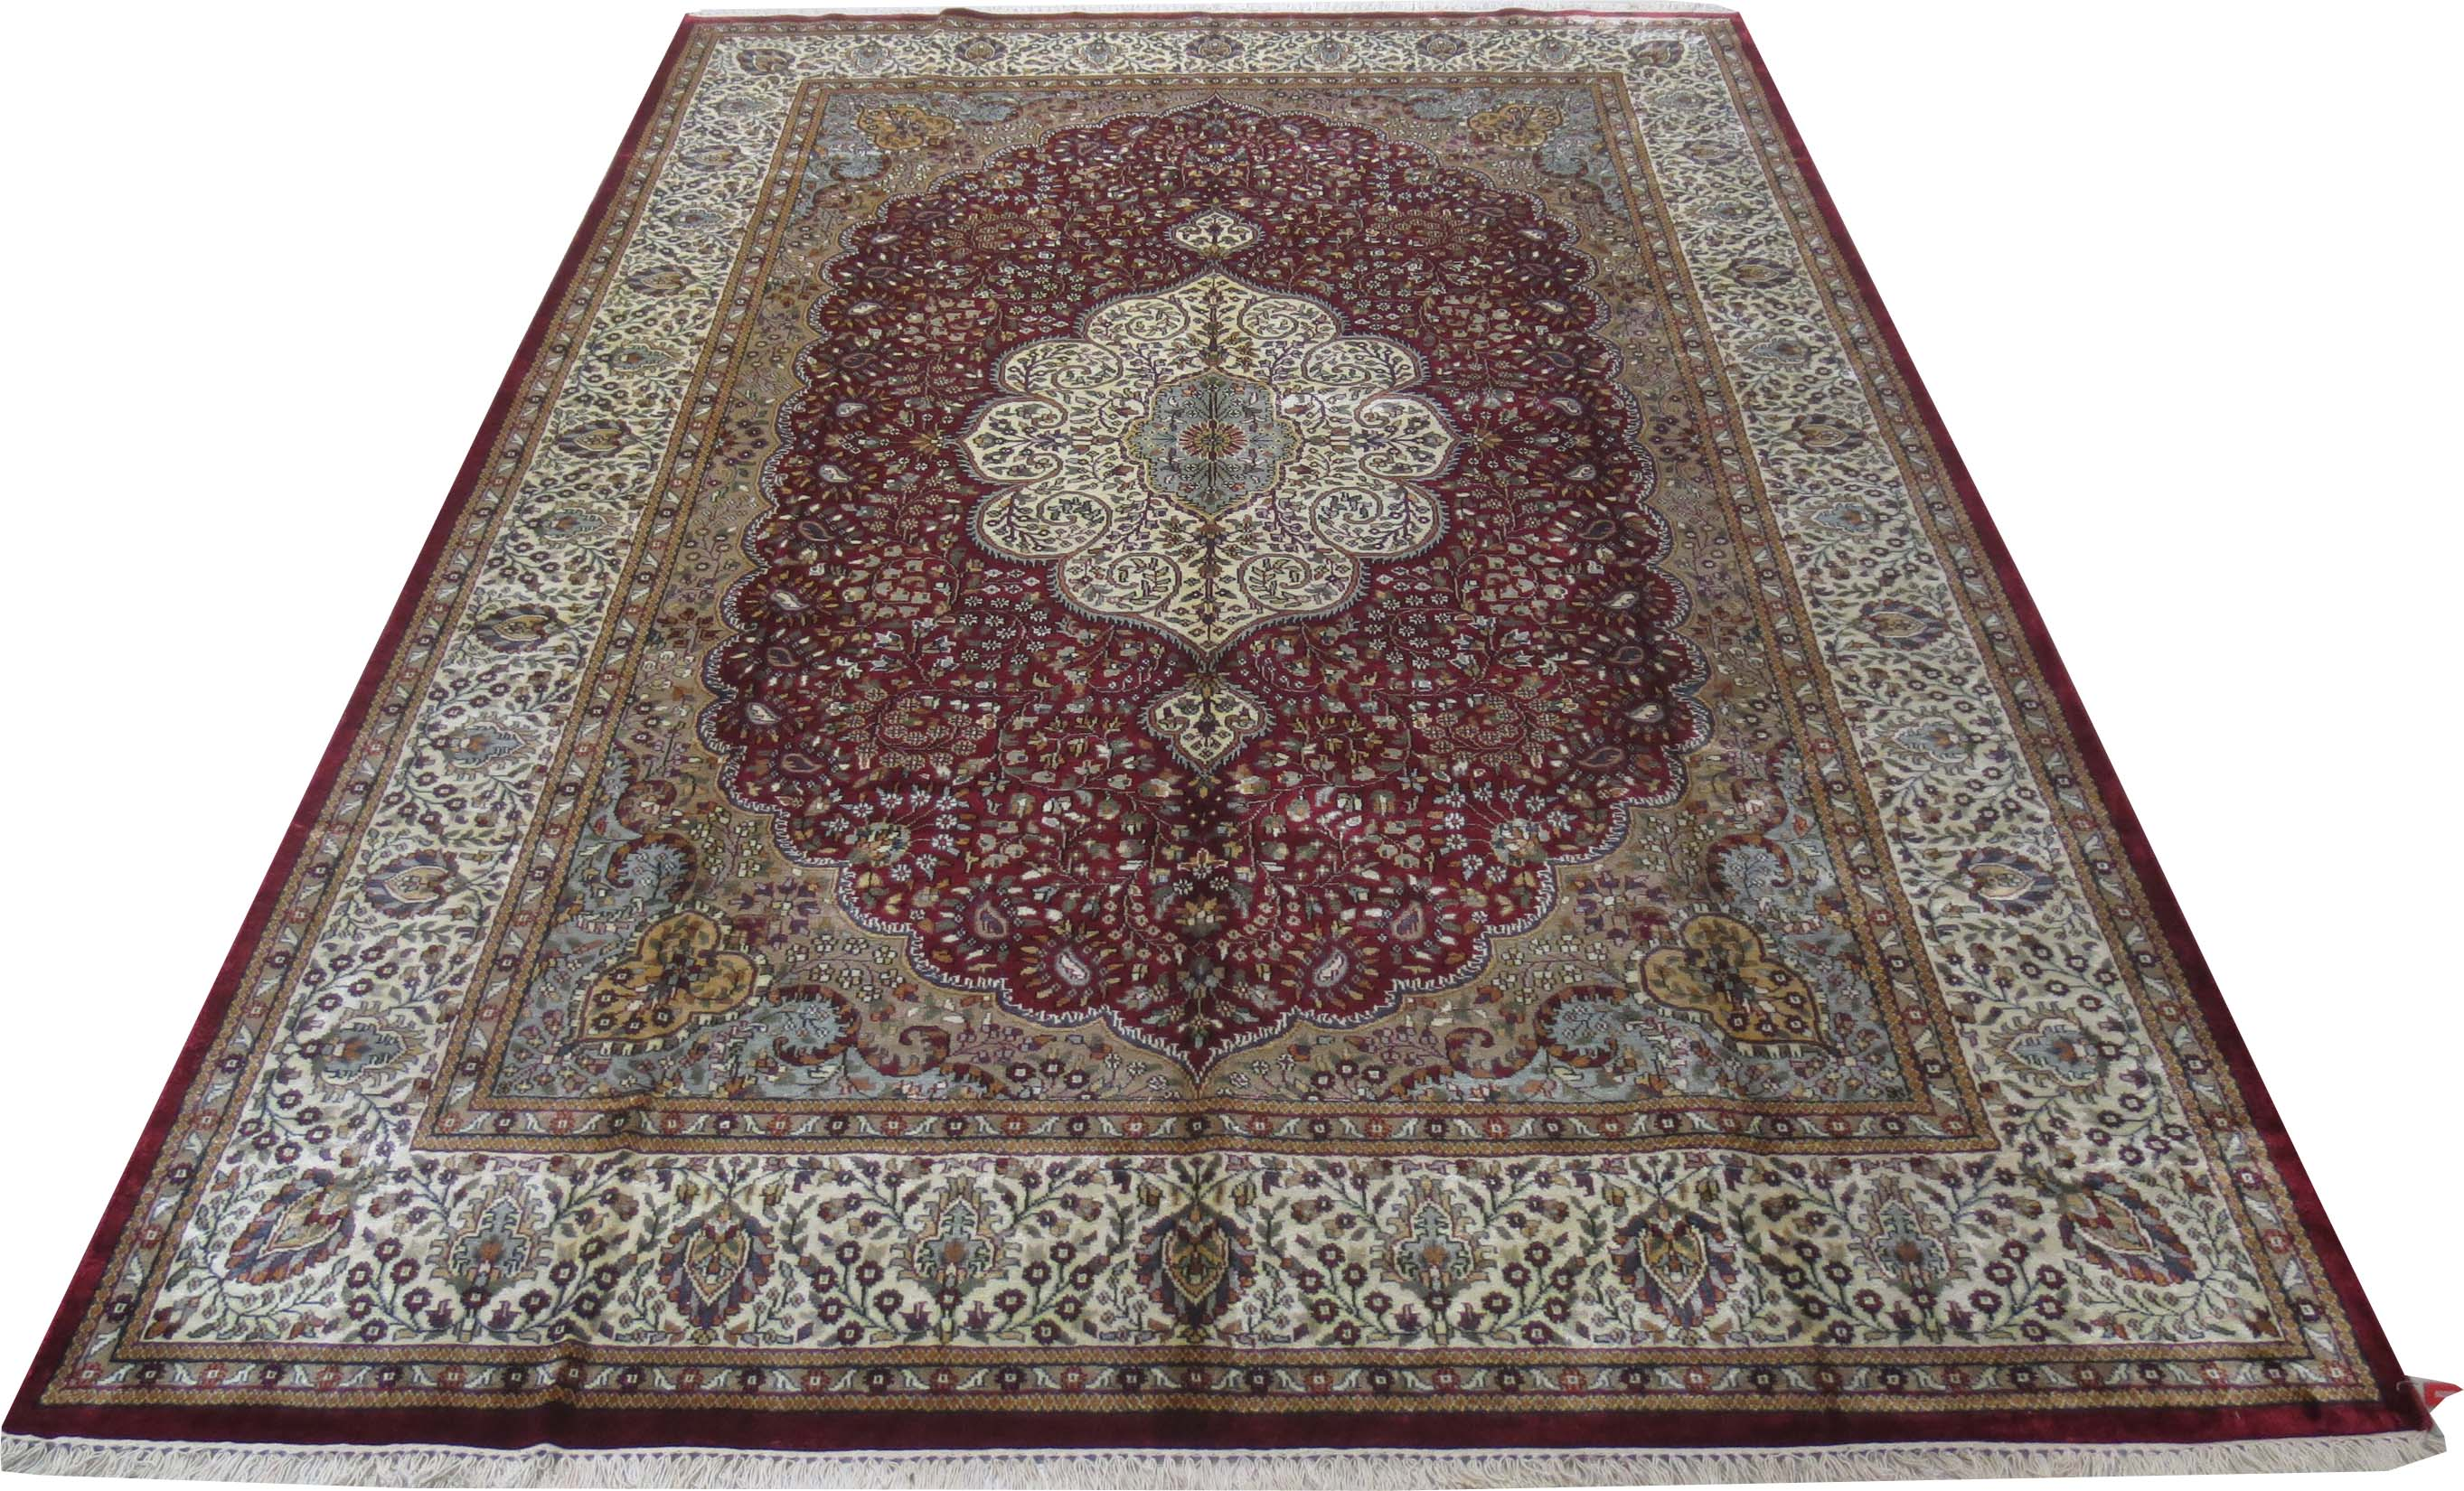 Ideal Home Decor Rugs Hand Knotted Rug 8 X 11 Art Silk Home Decorators Catalog Best Ideas of Home Decor and Design [homedecoratorscatalog.us]